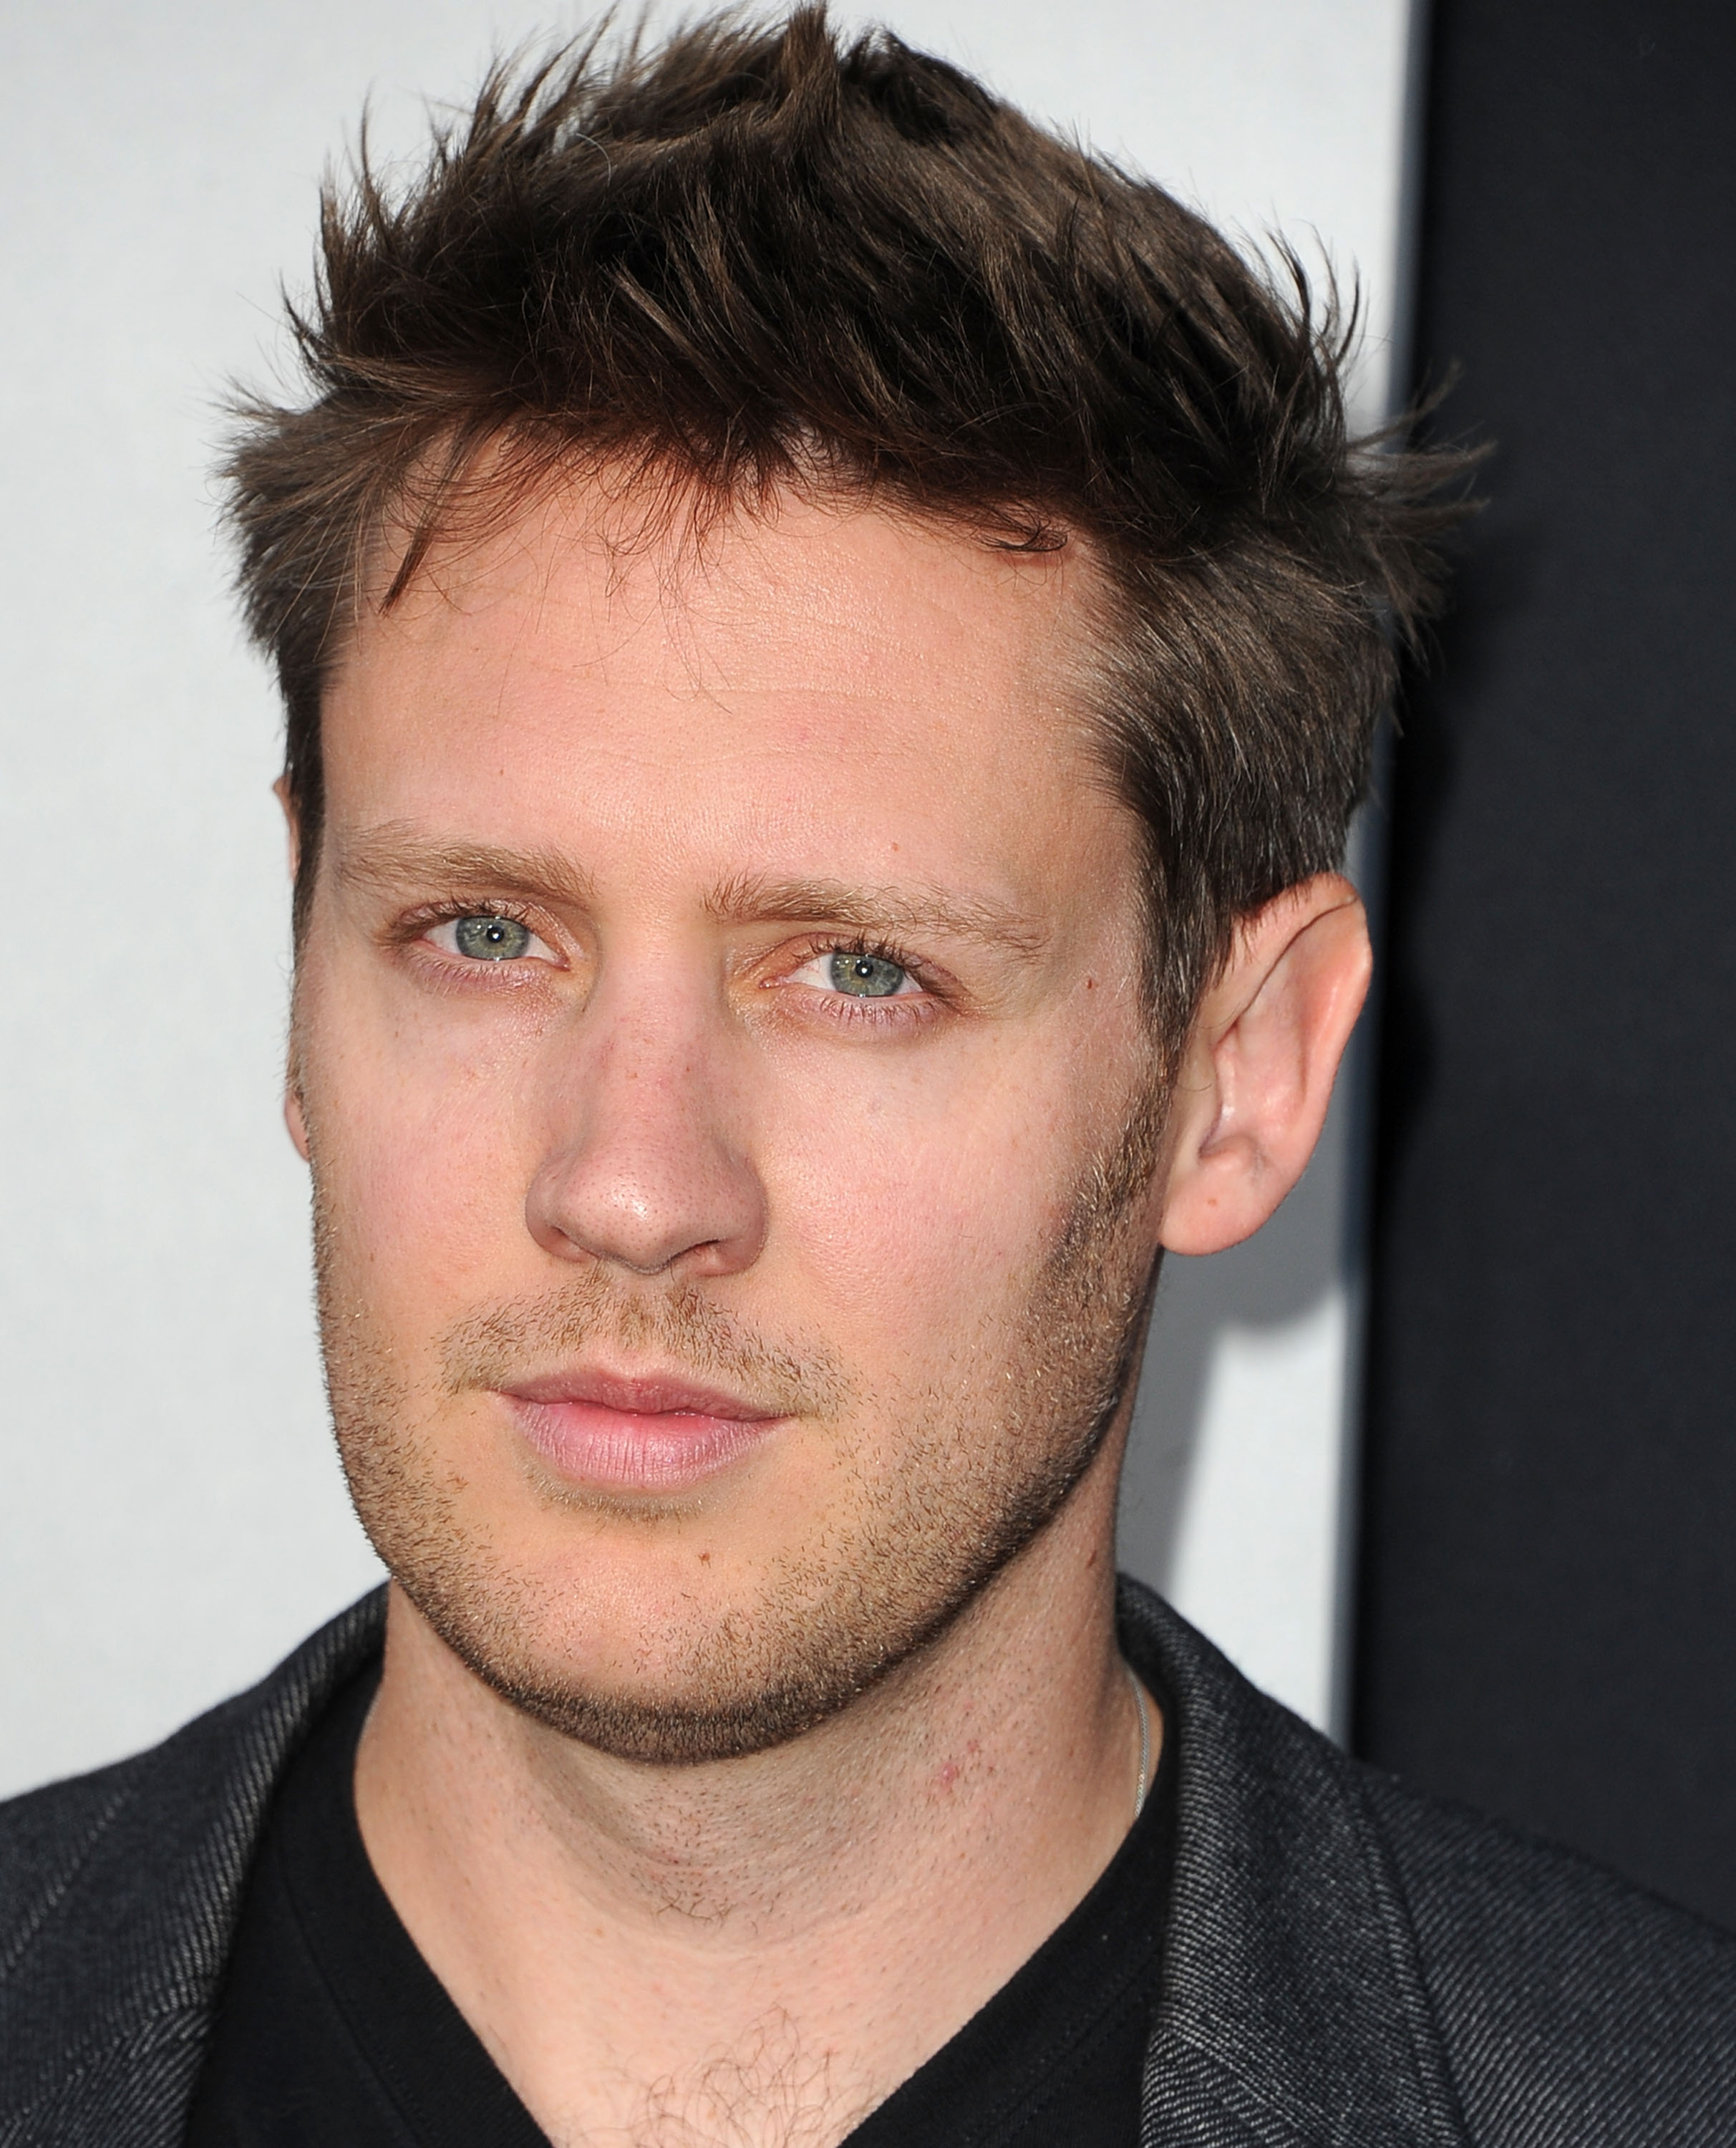 Neill Blomkamp arrives at the  Elysium  - Los Angeles Premiere at Regency Village Theatre on August 7, 2013 in Westwood, California.